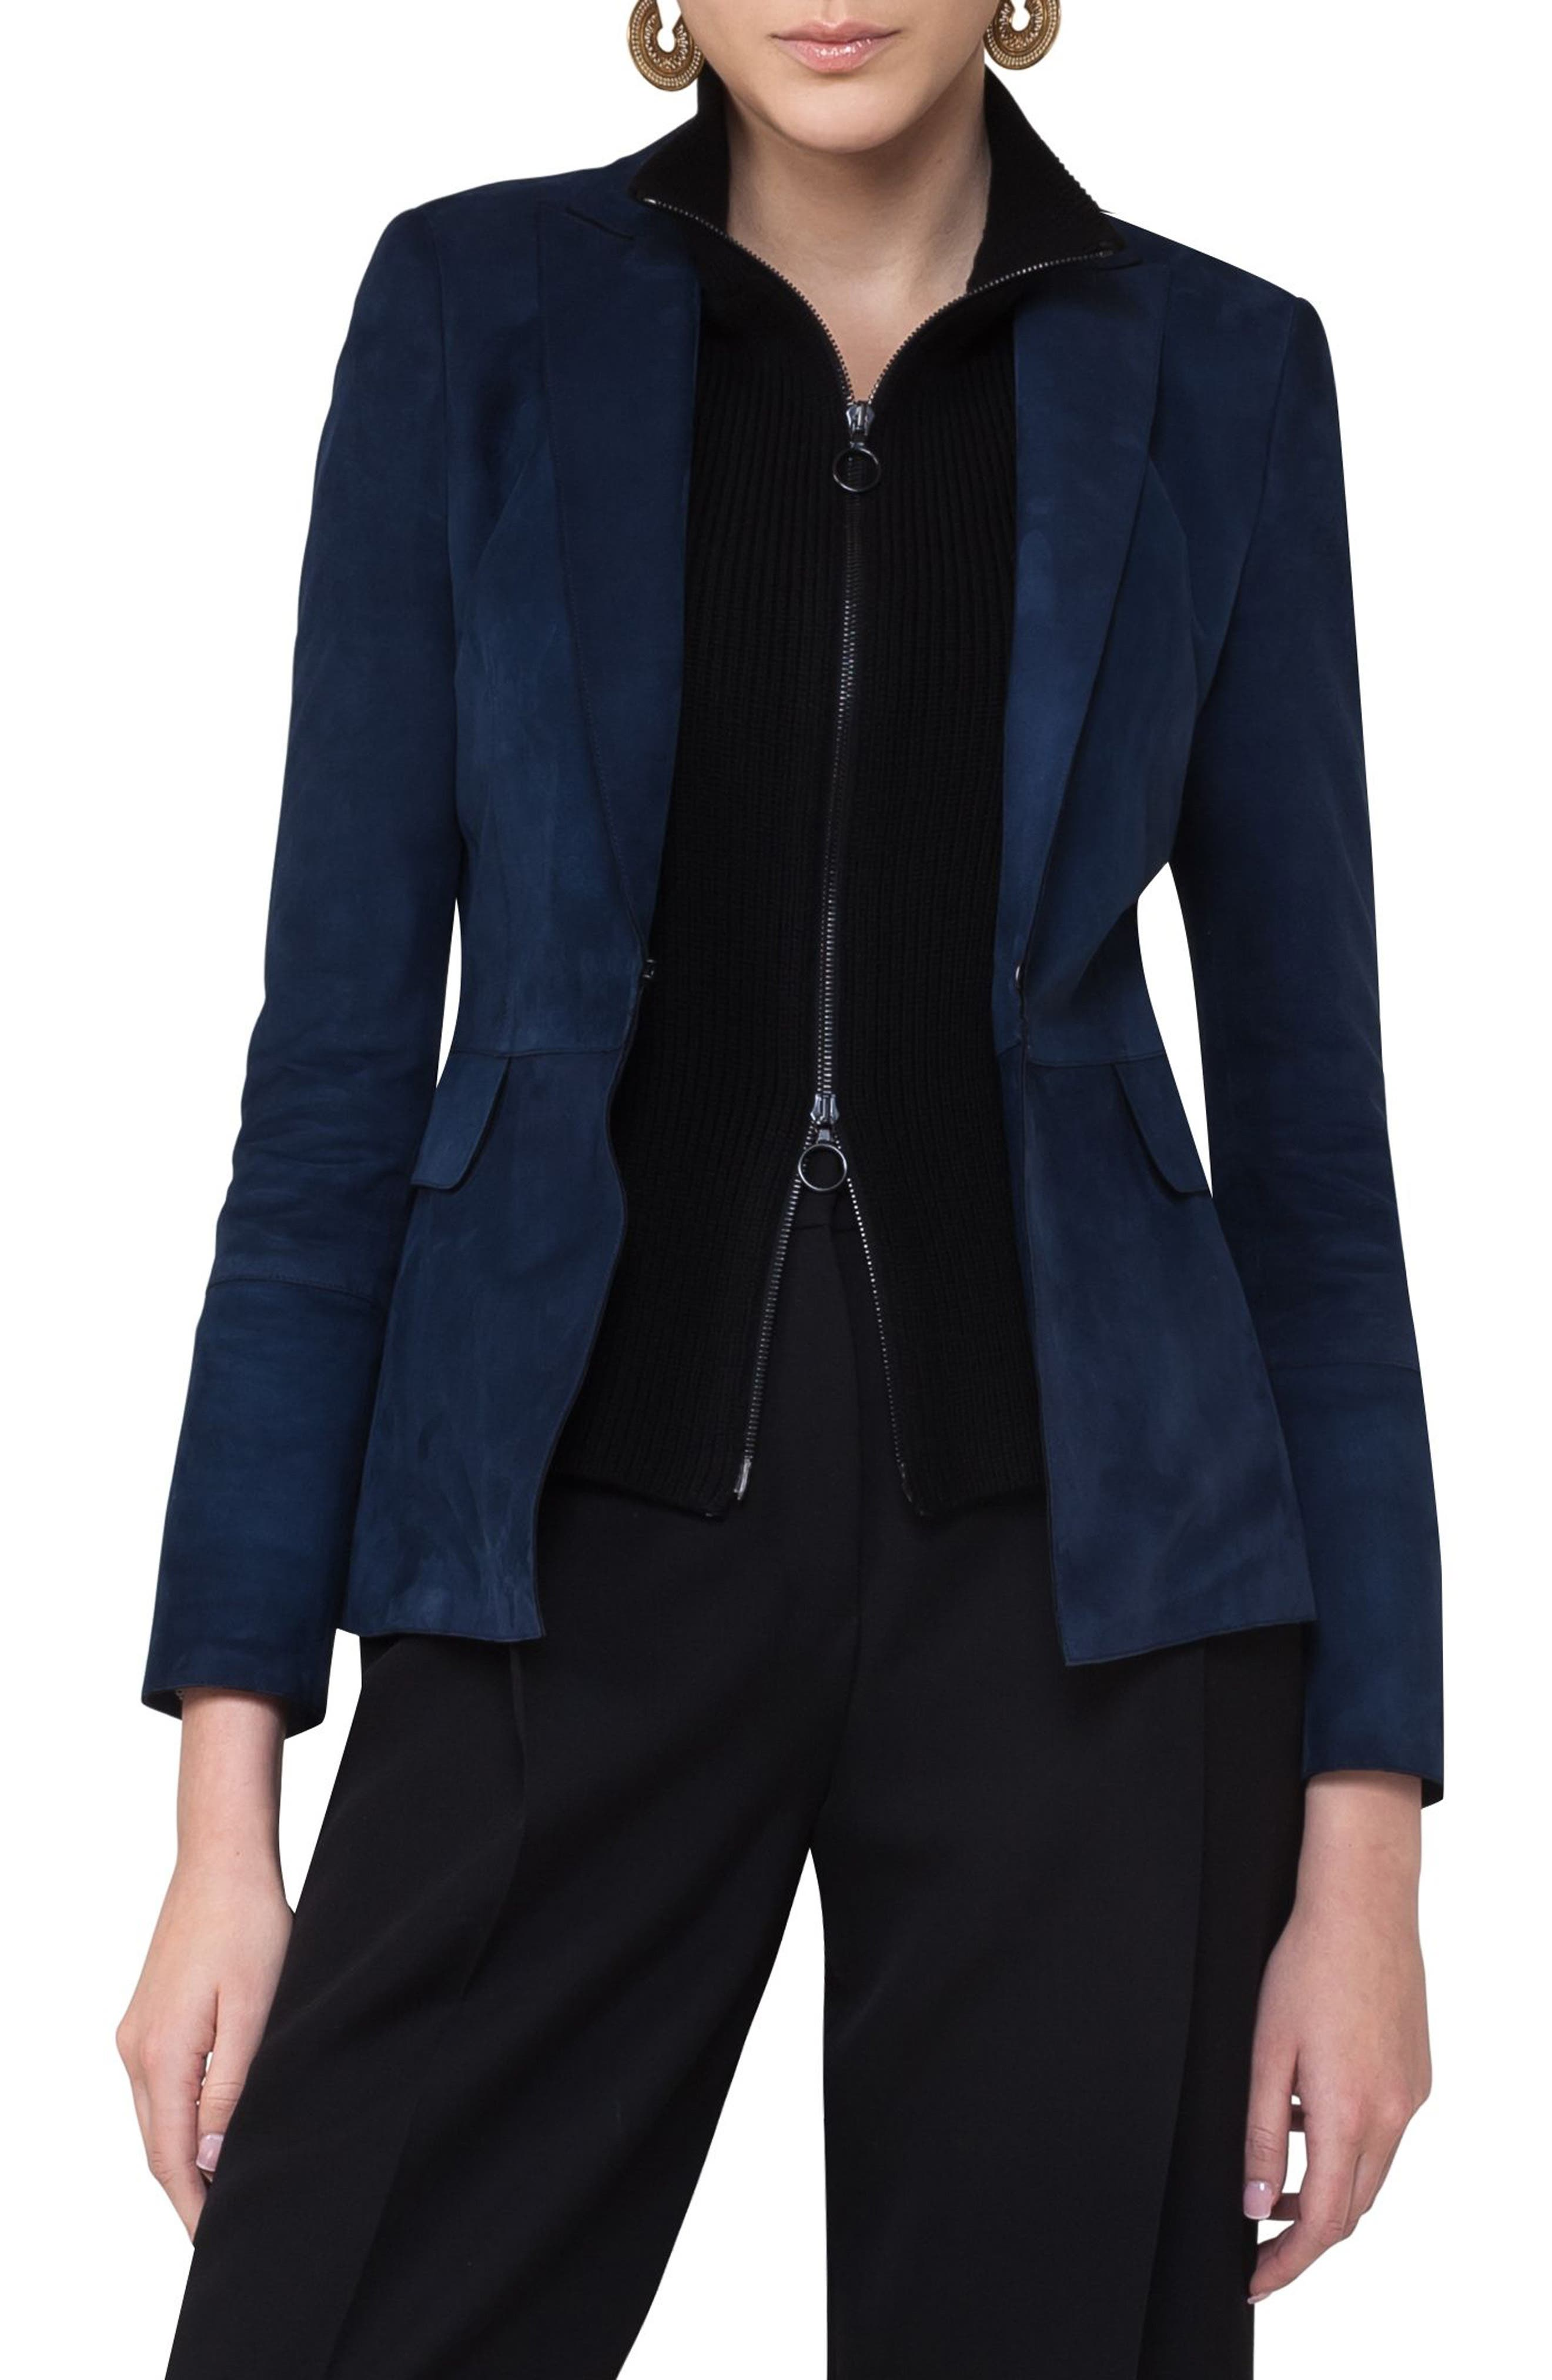 Suede Blazer with Removable Knit Insert,                         Main,                         color, Solid Blue Denim